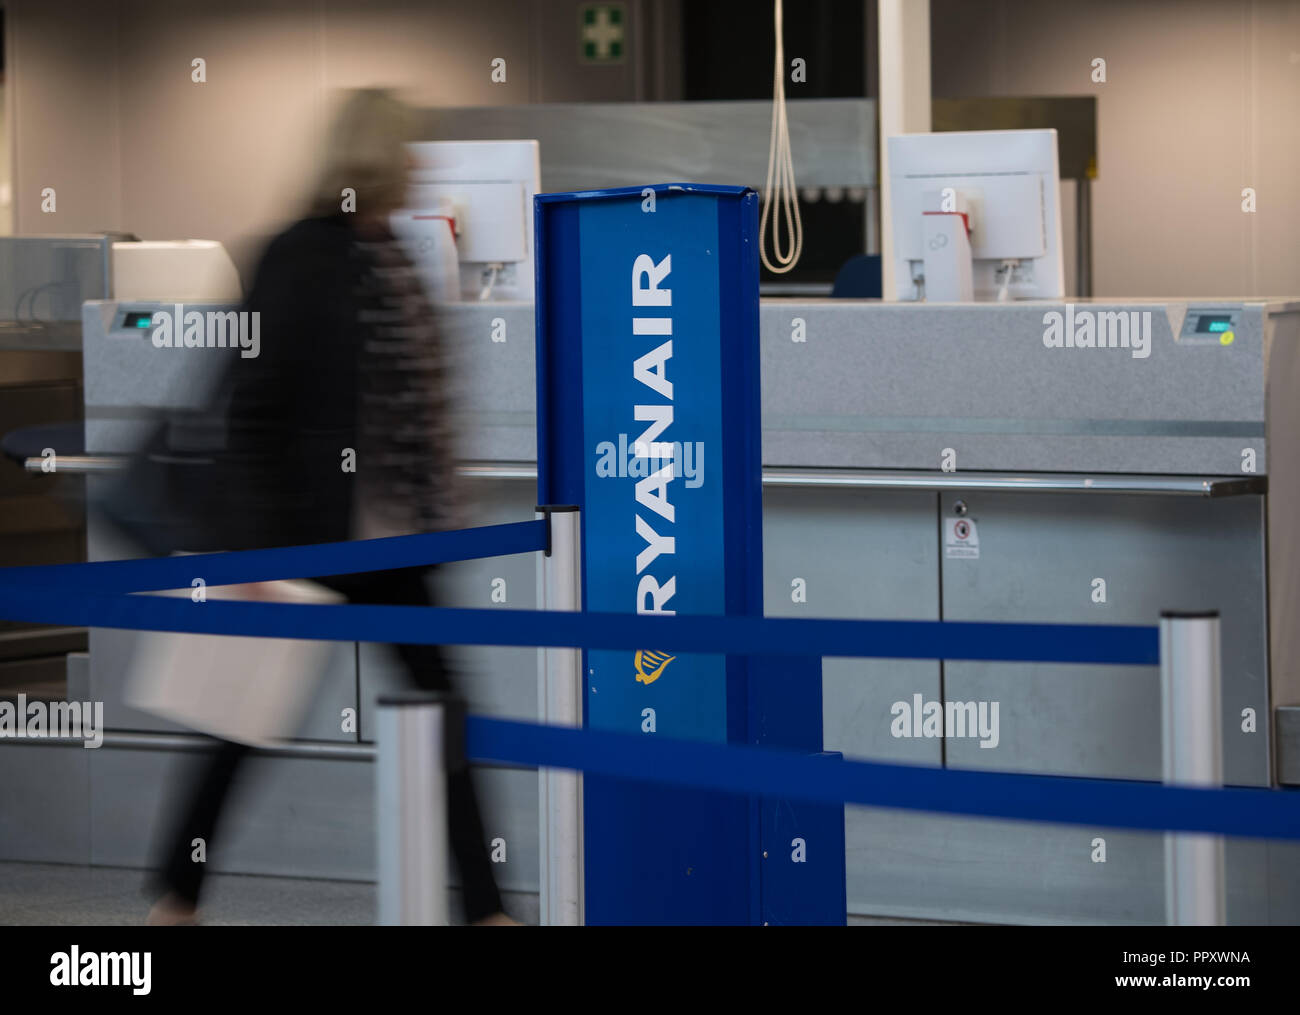 28 September 2018, Hessen, Frankfurt_Main: A woman walks past the Ryanair counter at the airport. Trade unions in several European countries have called for strikes at low-cost airline Ryanair. In Germany, the pilots of the Cockpit Association (VC) and the flight attendants organized at Verdi participate. Photo: Andreas Arnold/dpa - Stock Image